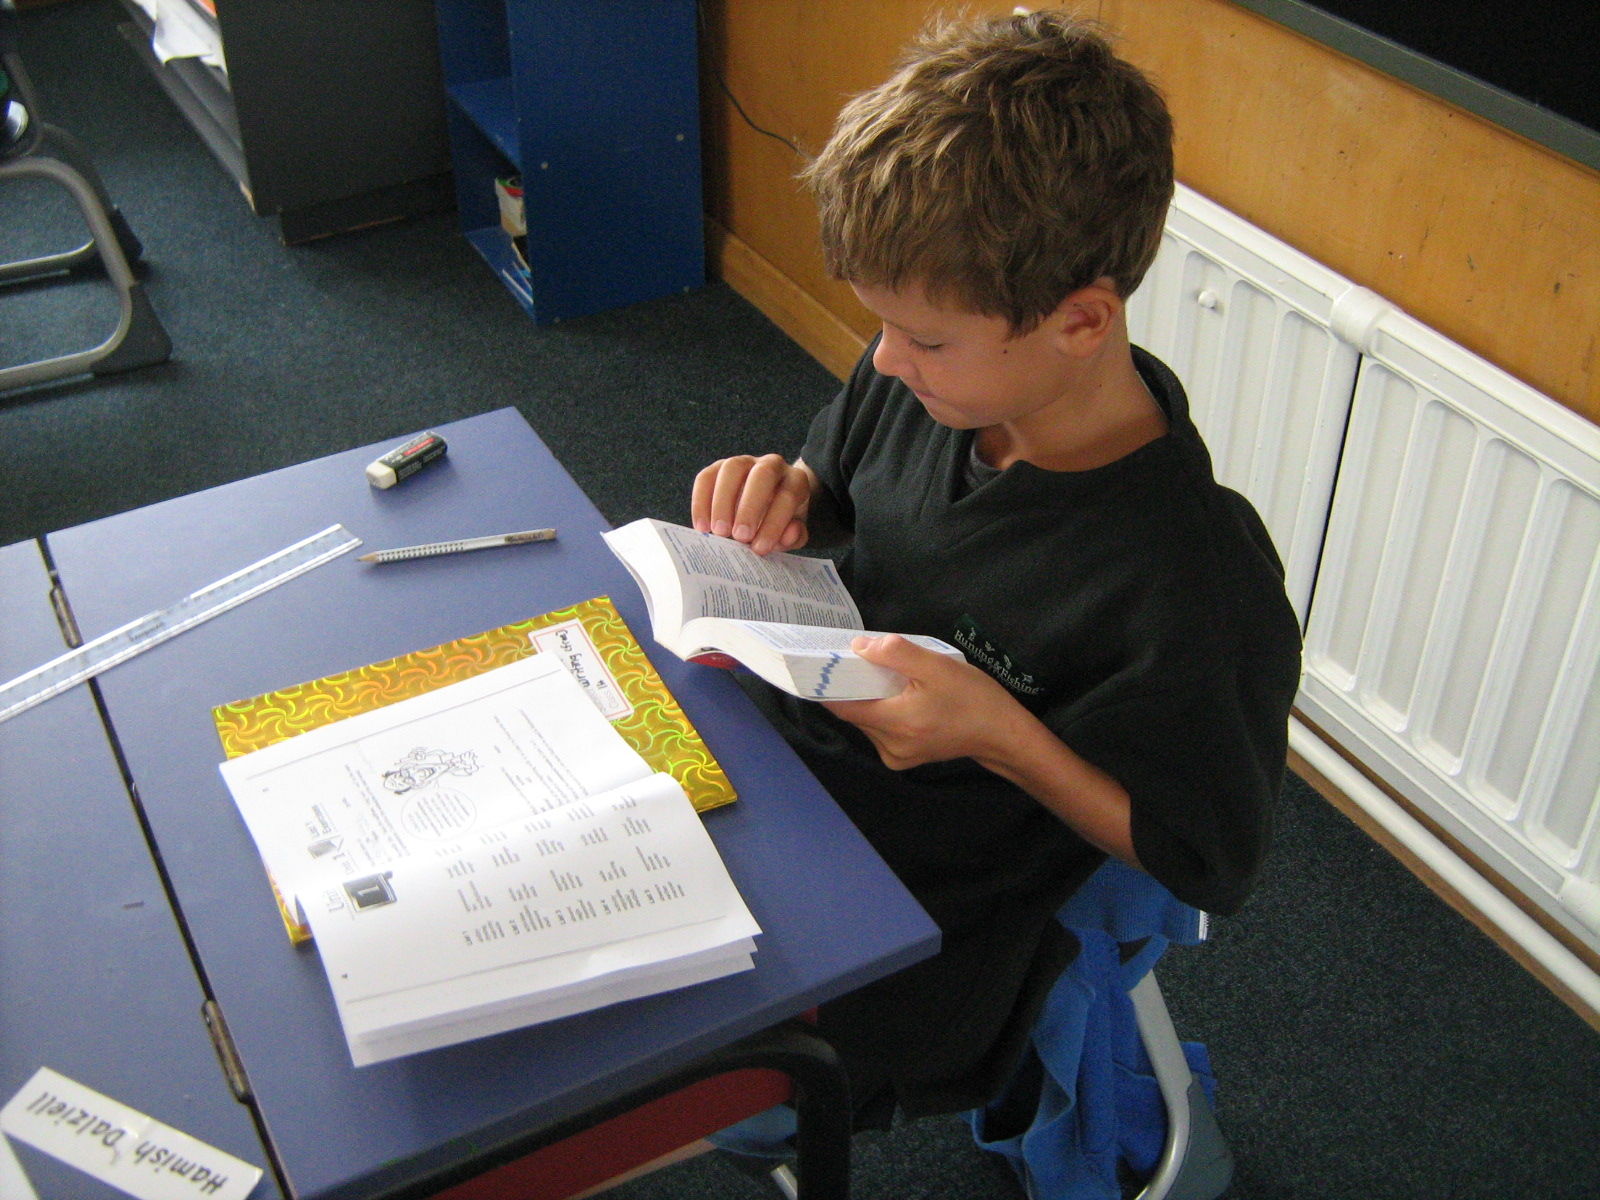 room s learning log enjoying many different ways of learning spelling children work independently on complex spelling lists and spelling activities working dictionaries defining understanding spelling